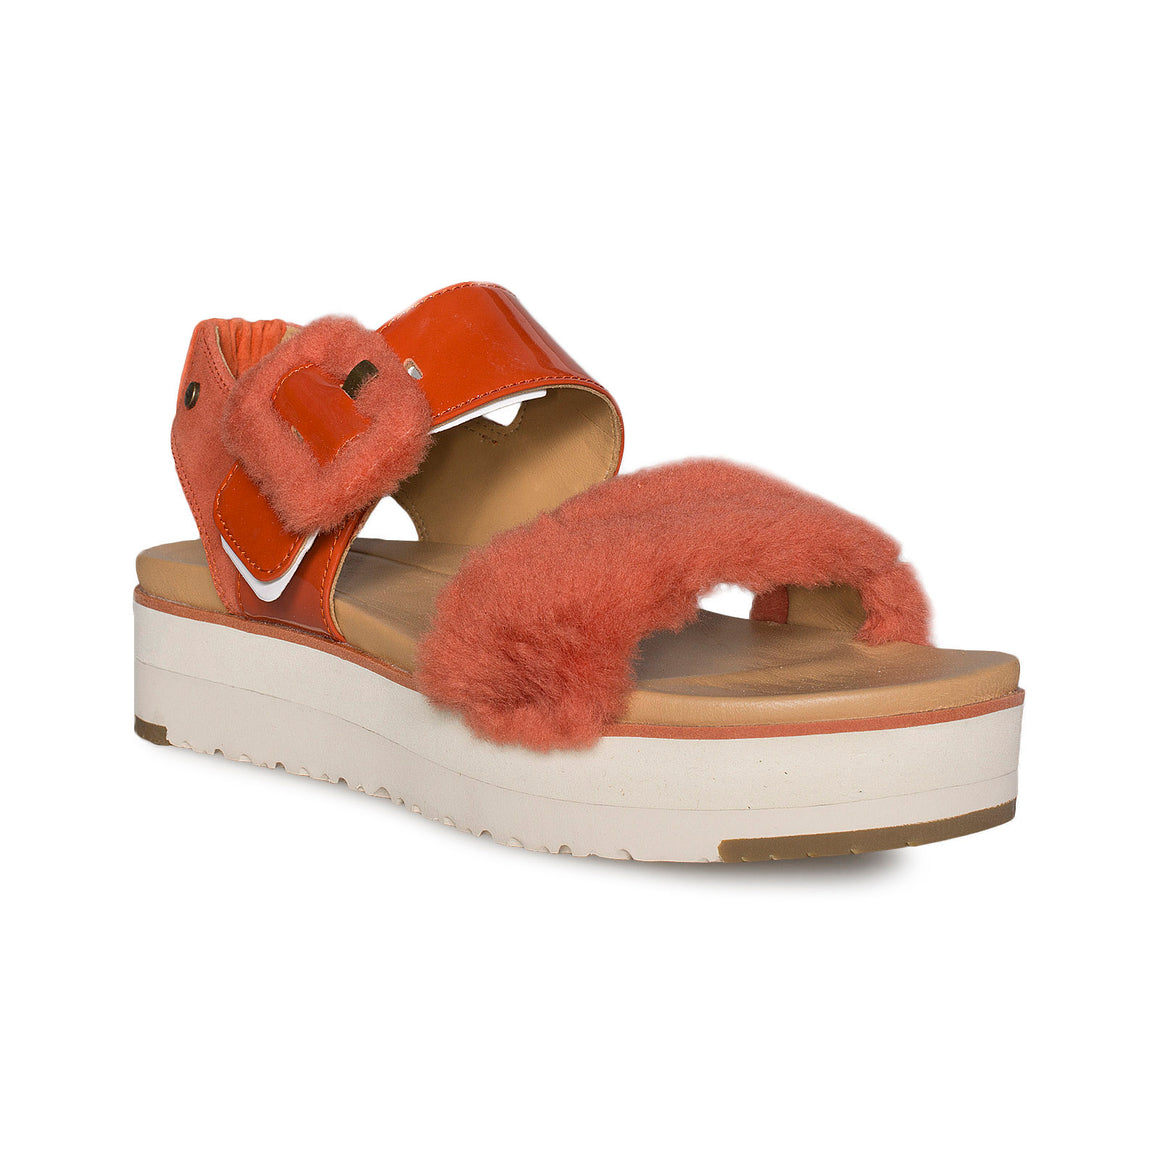 UGG Le Fluff Red Rock Sandals - Women's